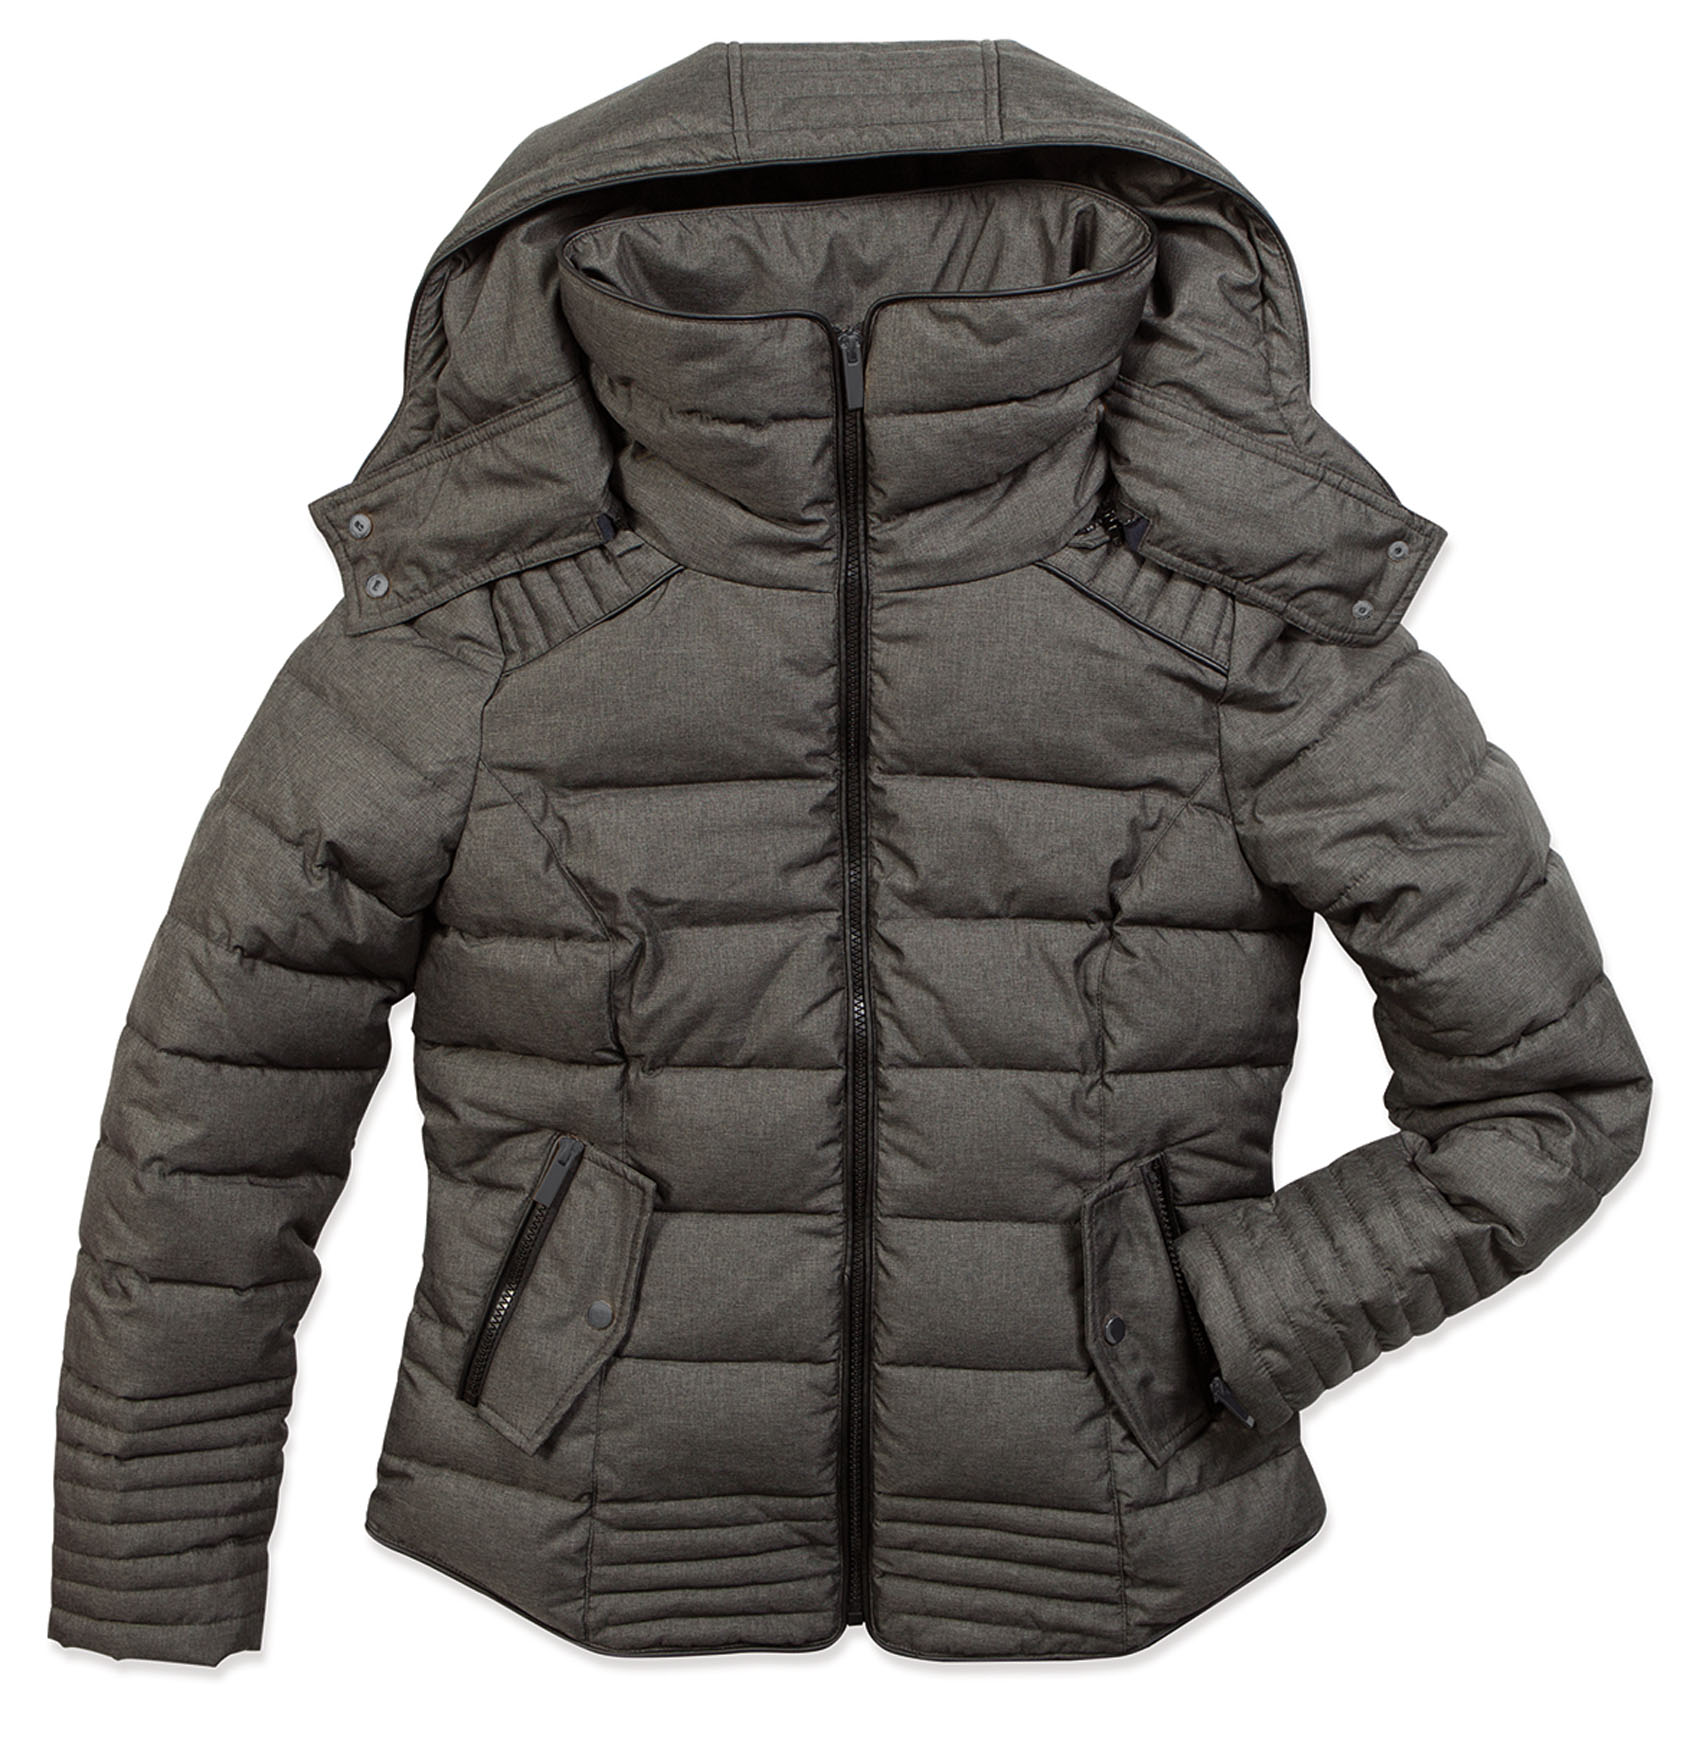 Stedman Urban Padded Jacket Active for her